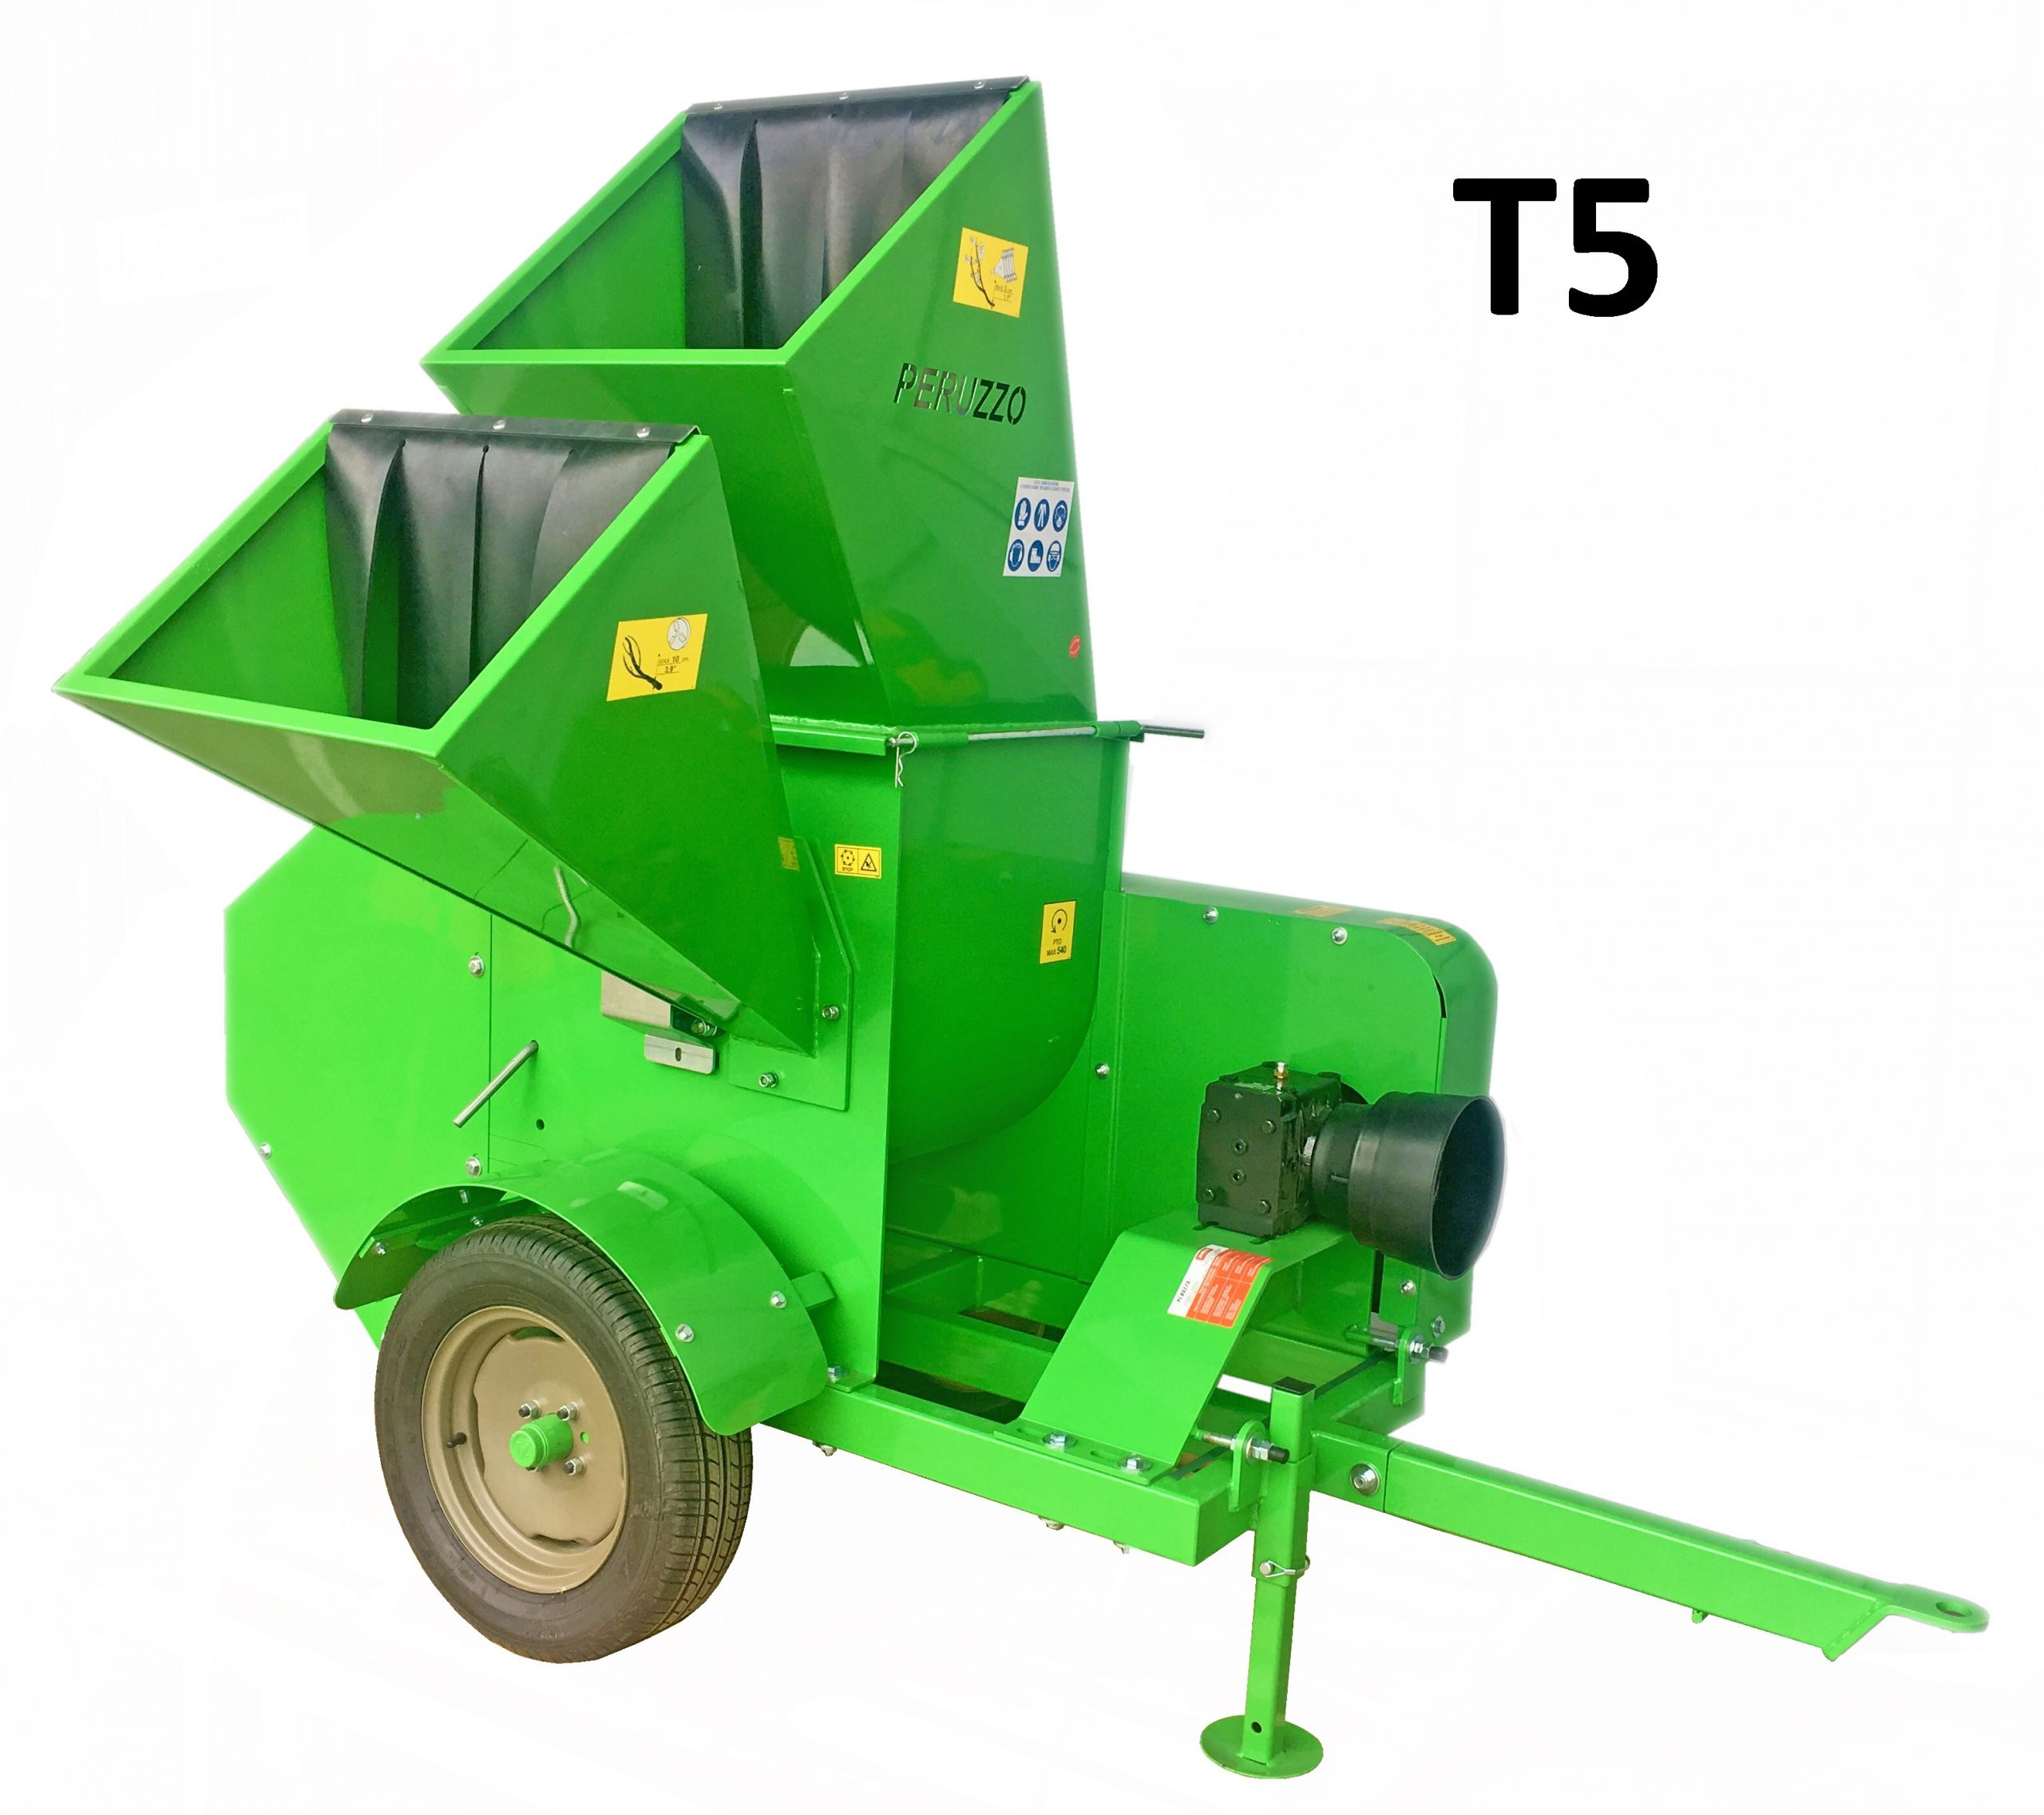 , Chipper Shredder T5 ground discharge, Peruzzo